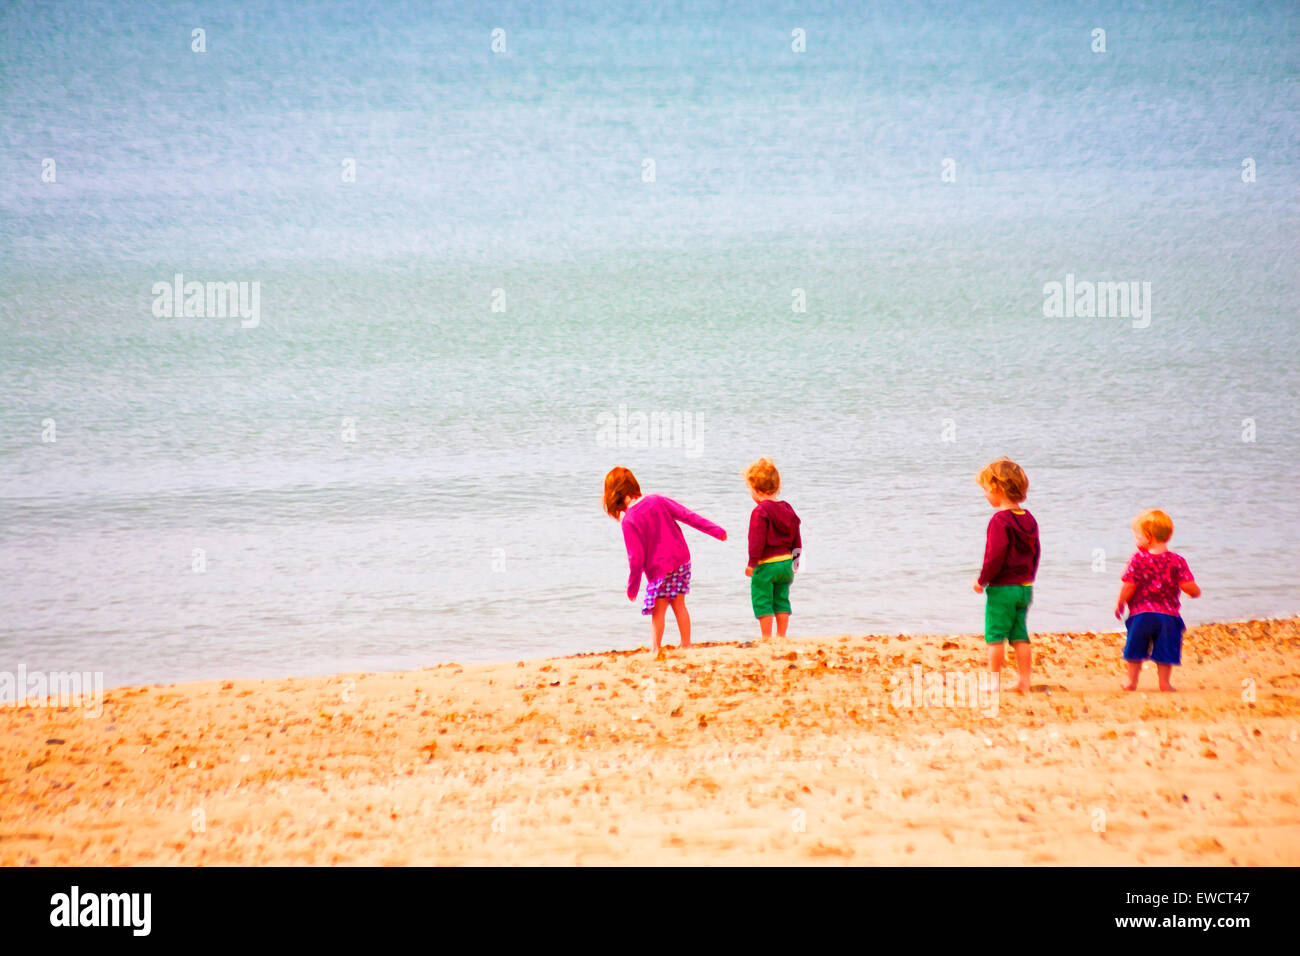 Painterly effect of children at the seaside - Stock Image